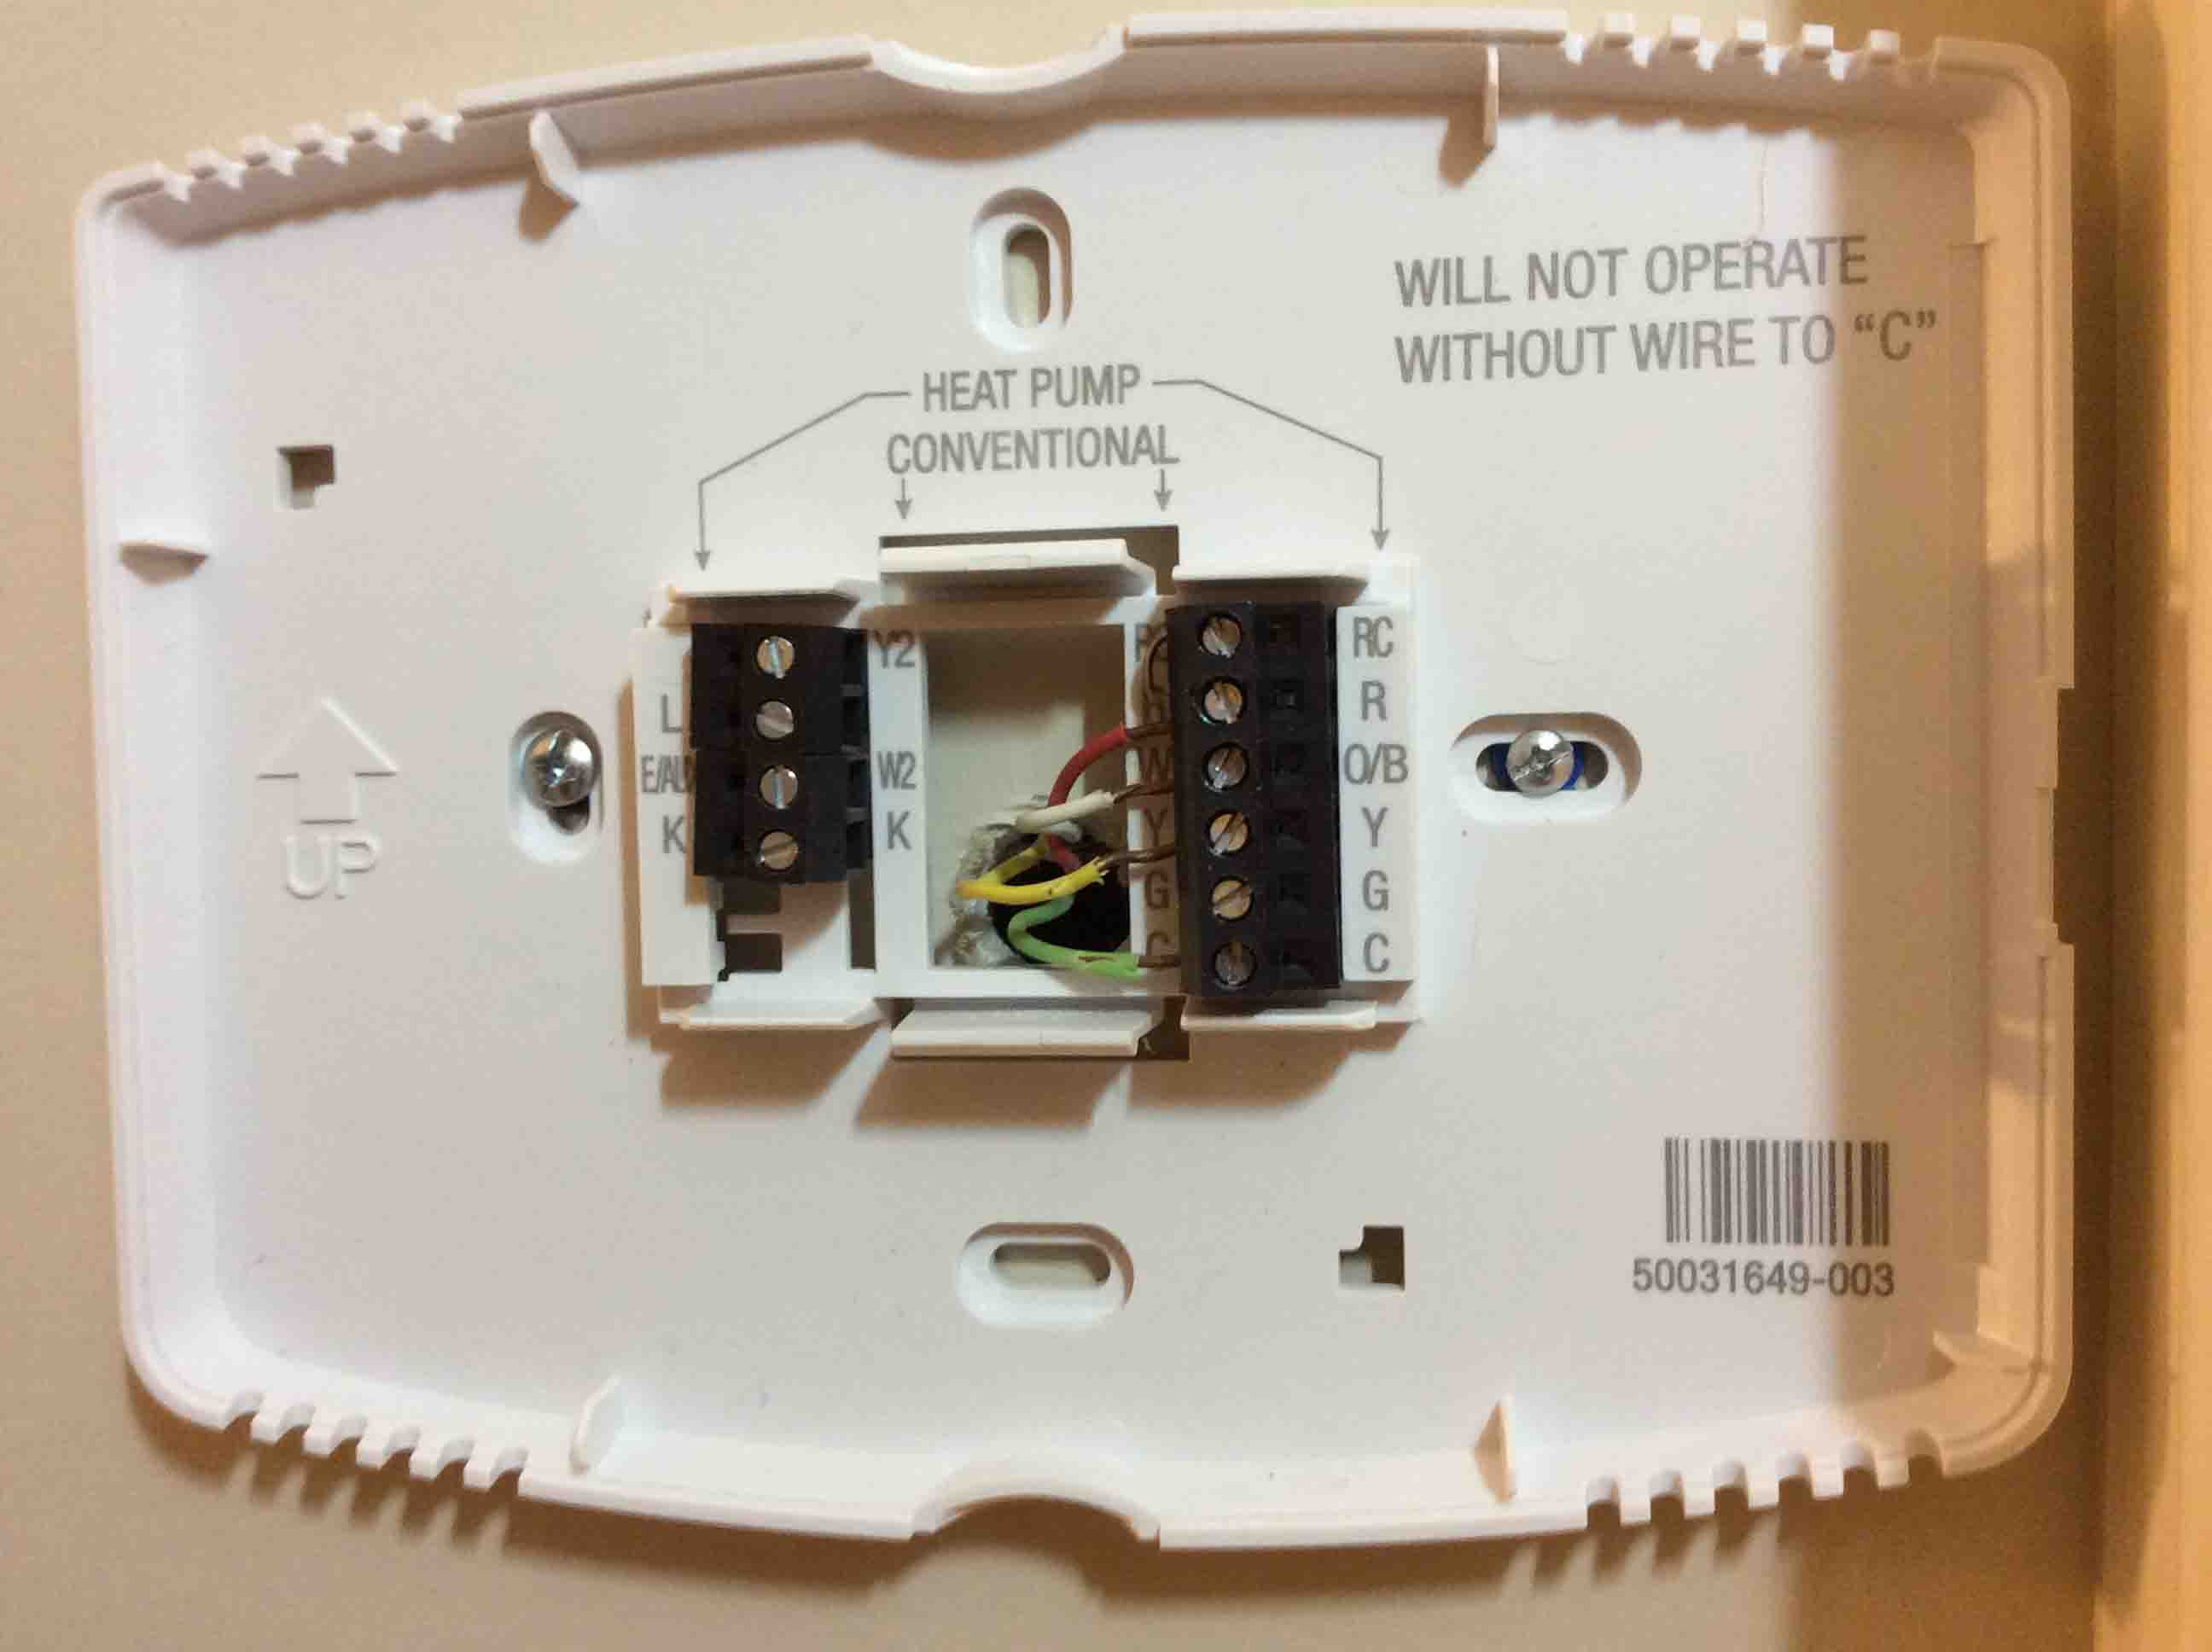 Honeywell Smart Thermostat Wiring Instructions Tom S Tek Stop